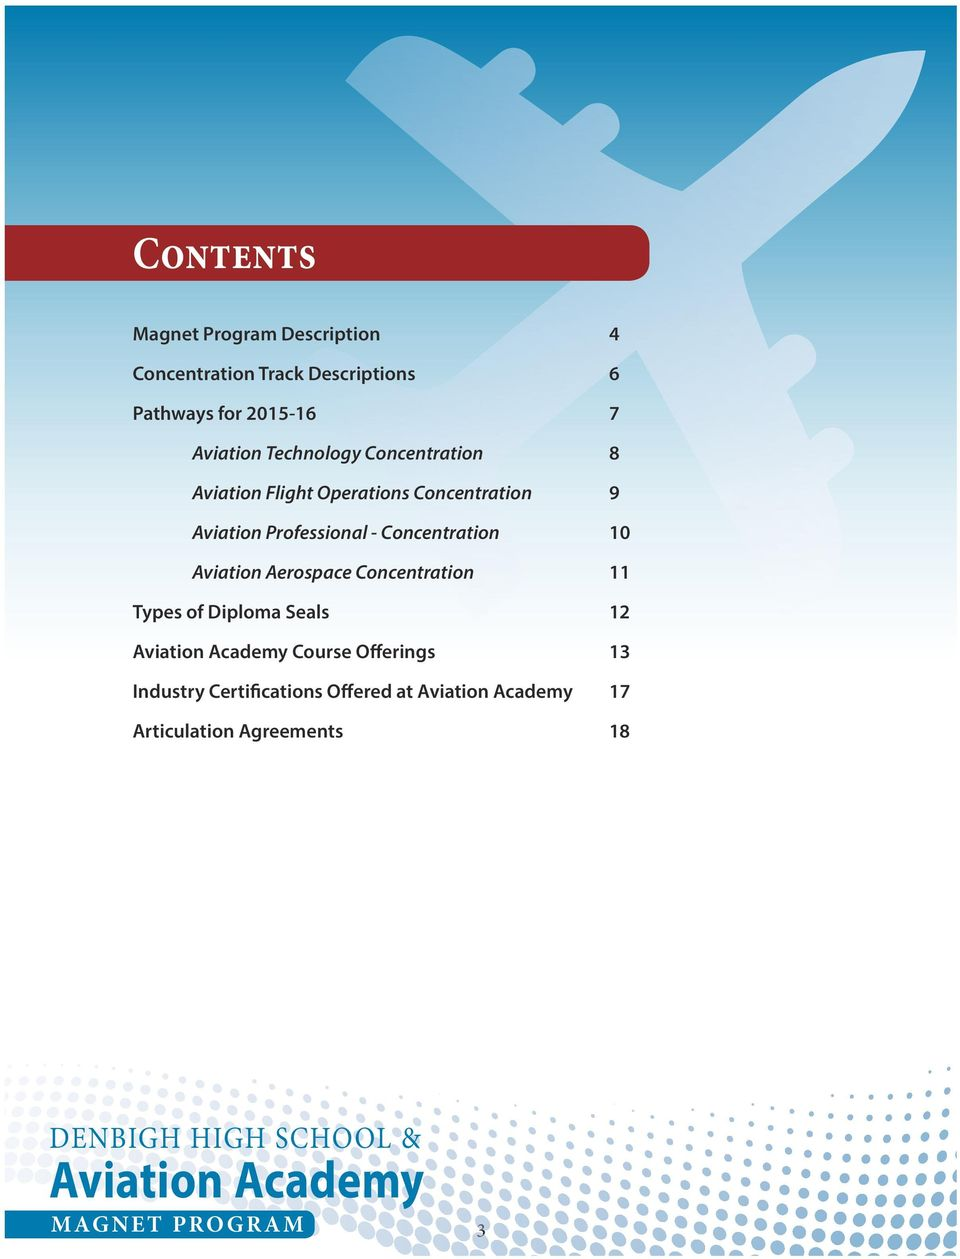 Aviation Aerospace Concentration 11 Types of Diploma Seals 12 Aviation Academy Course Offerings 13 Industry